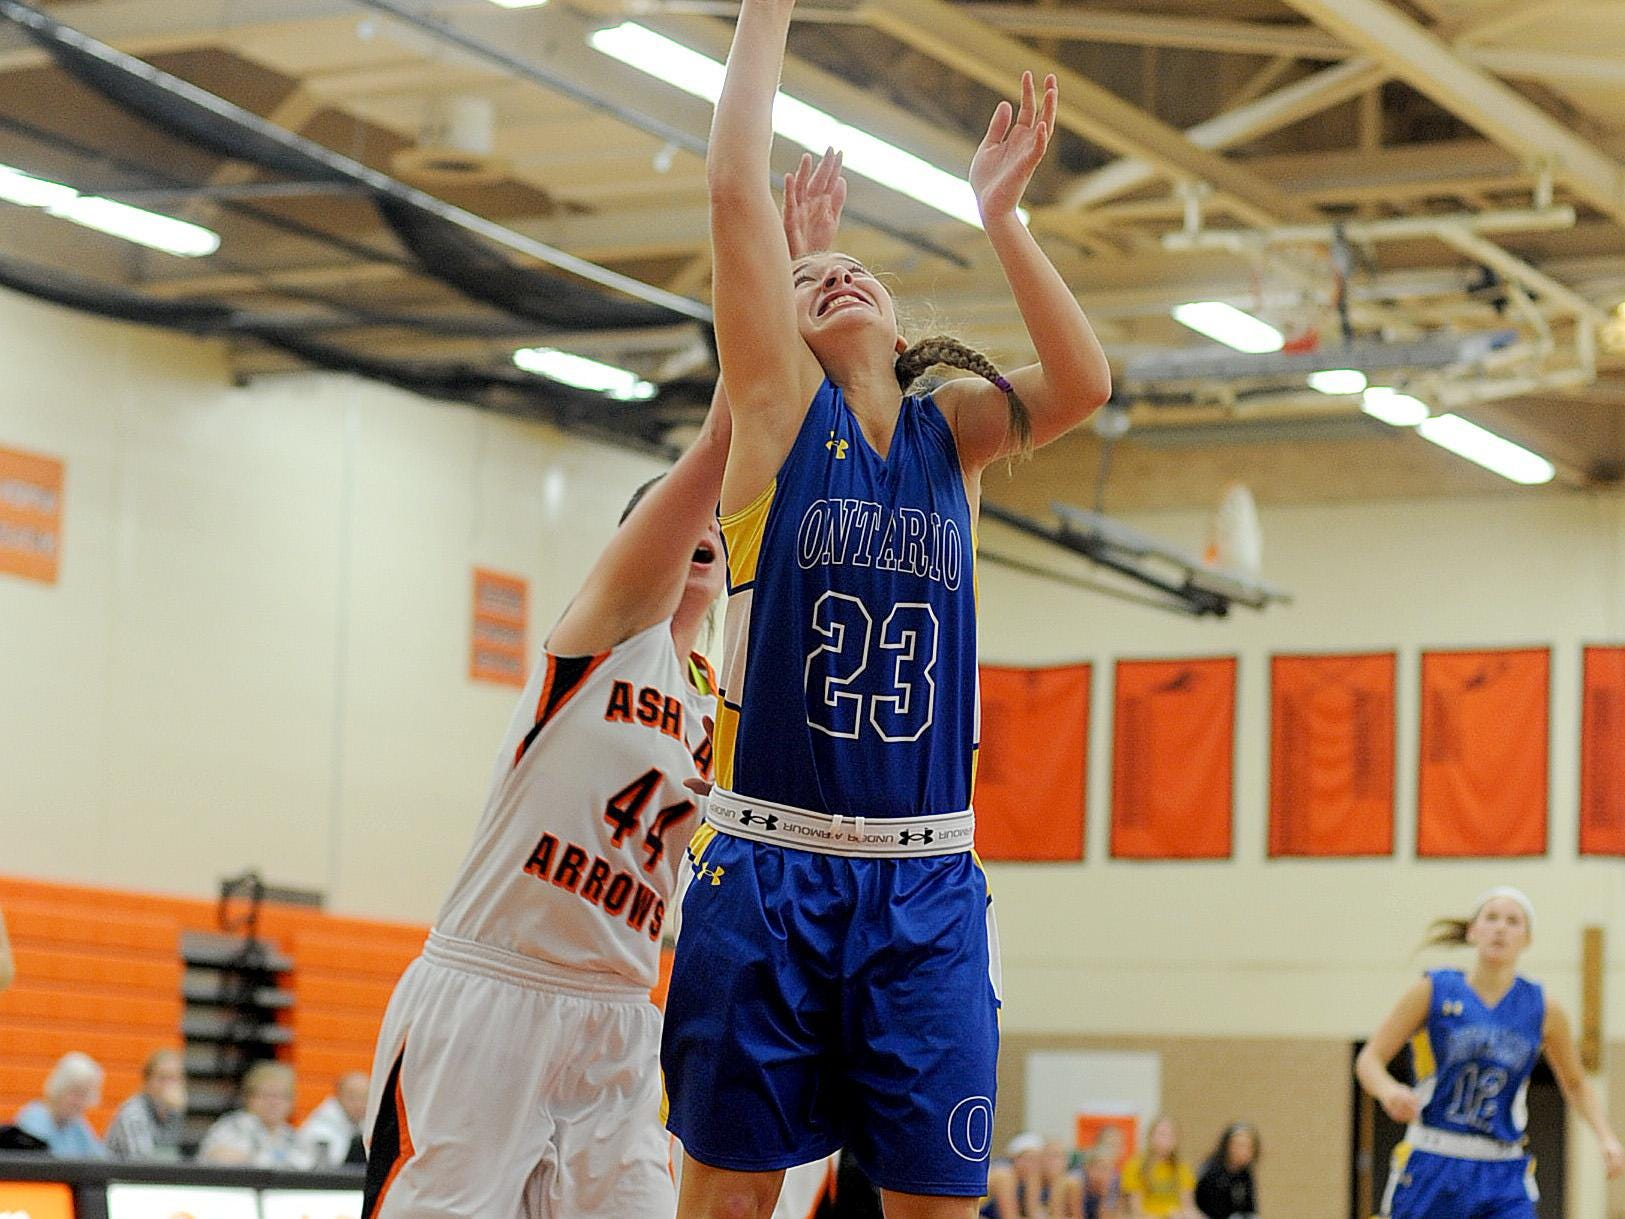 Ontario's Amanda Nething puts up a shot Tuesday night as Ashland defender Katie Kennedy closes in on her.